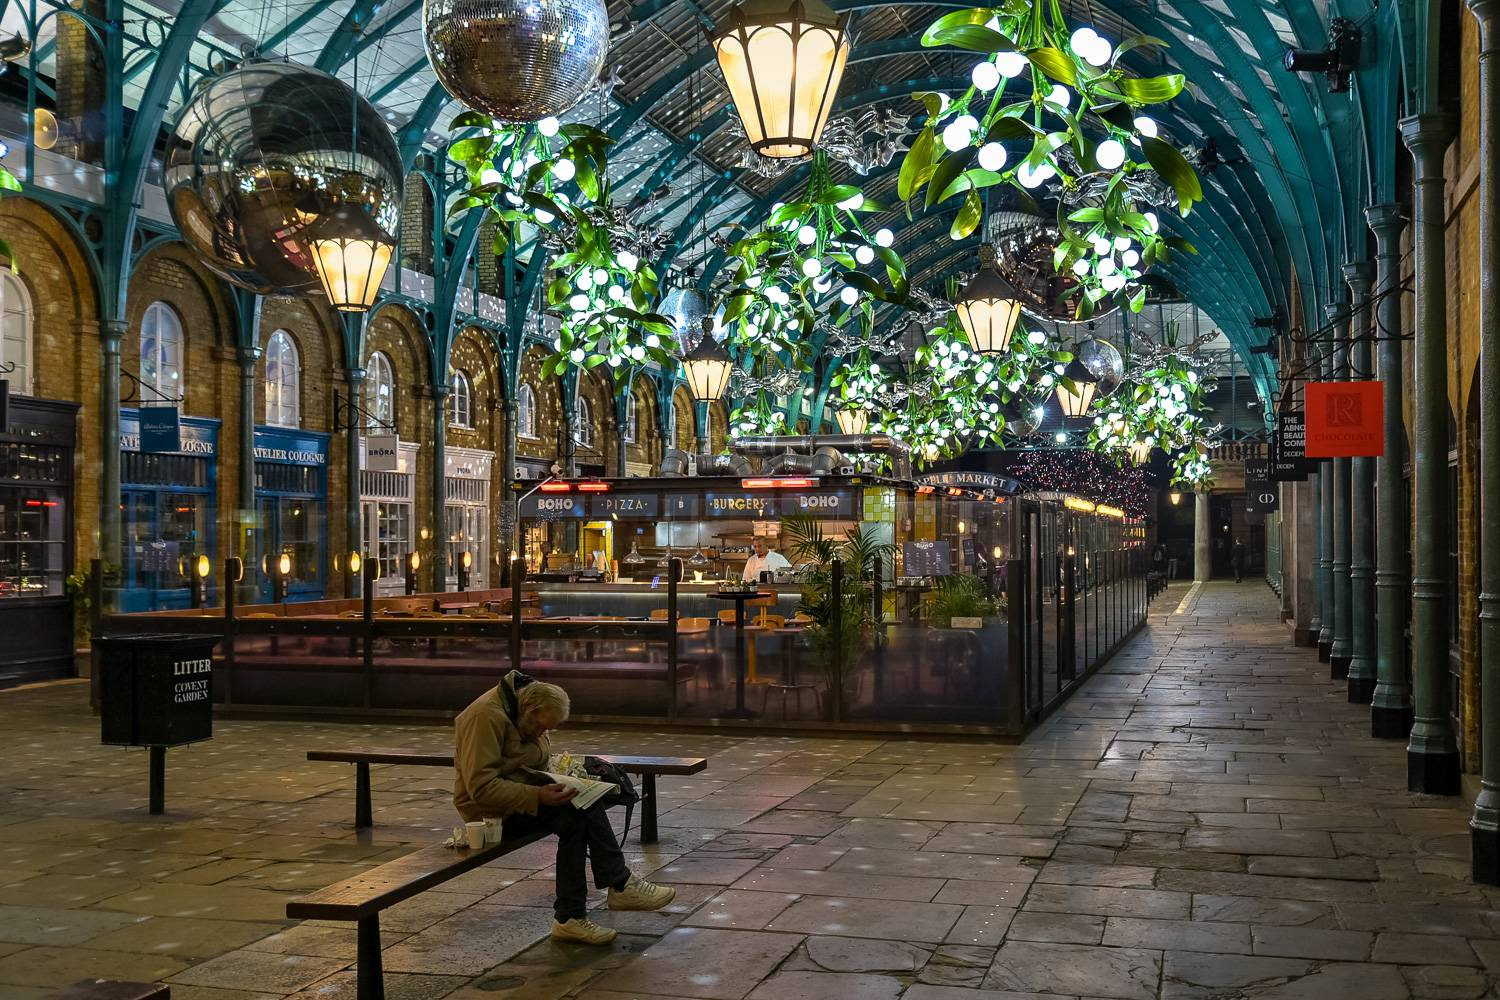 Image of Covent Garden Market decorated for the holidays with light-up bunches of mistletoe.